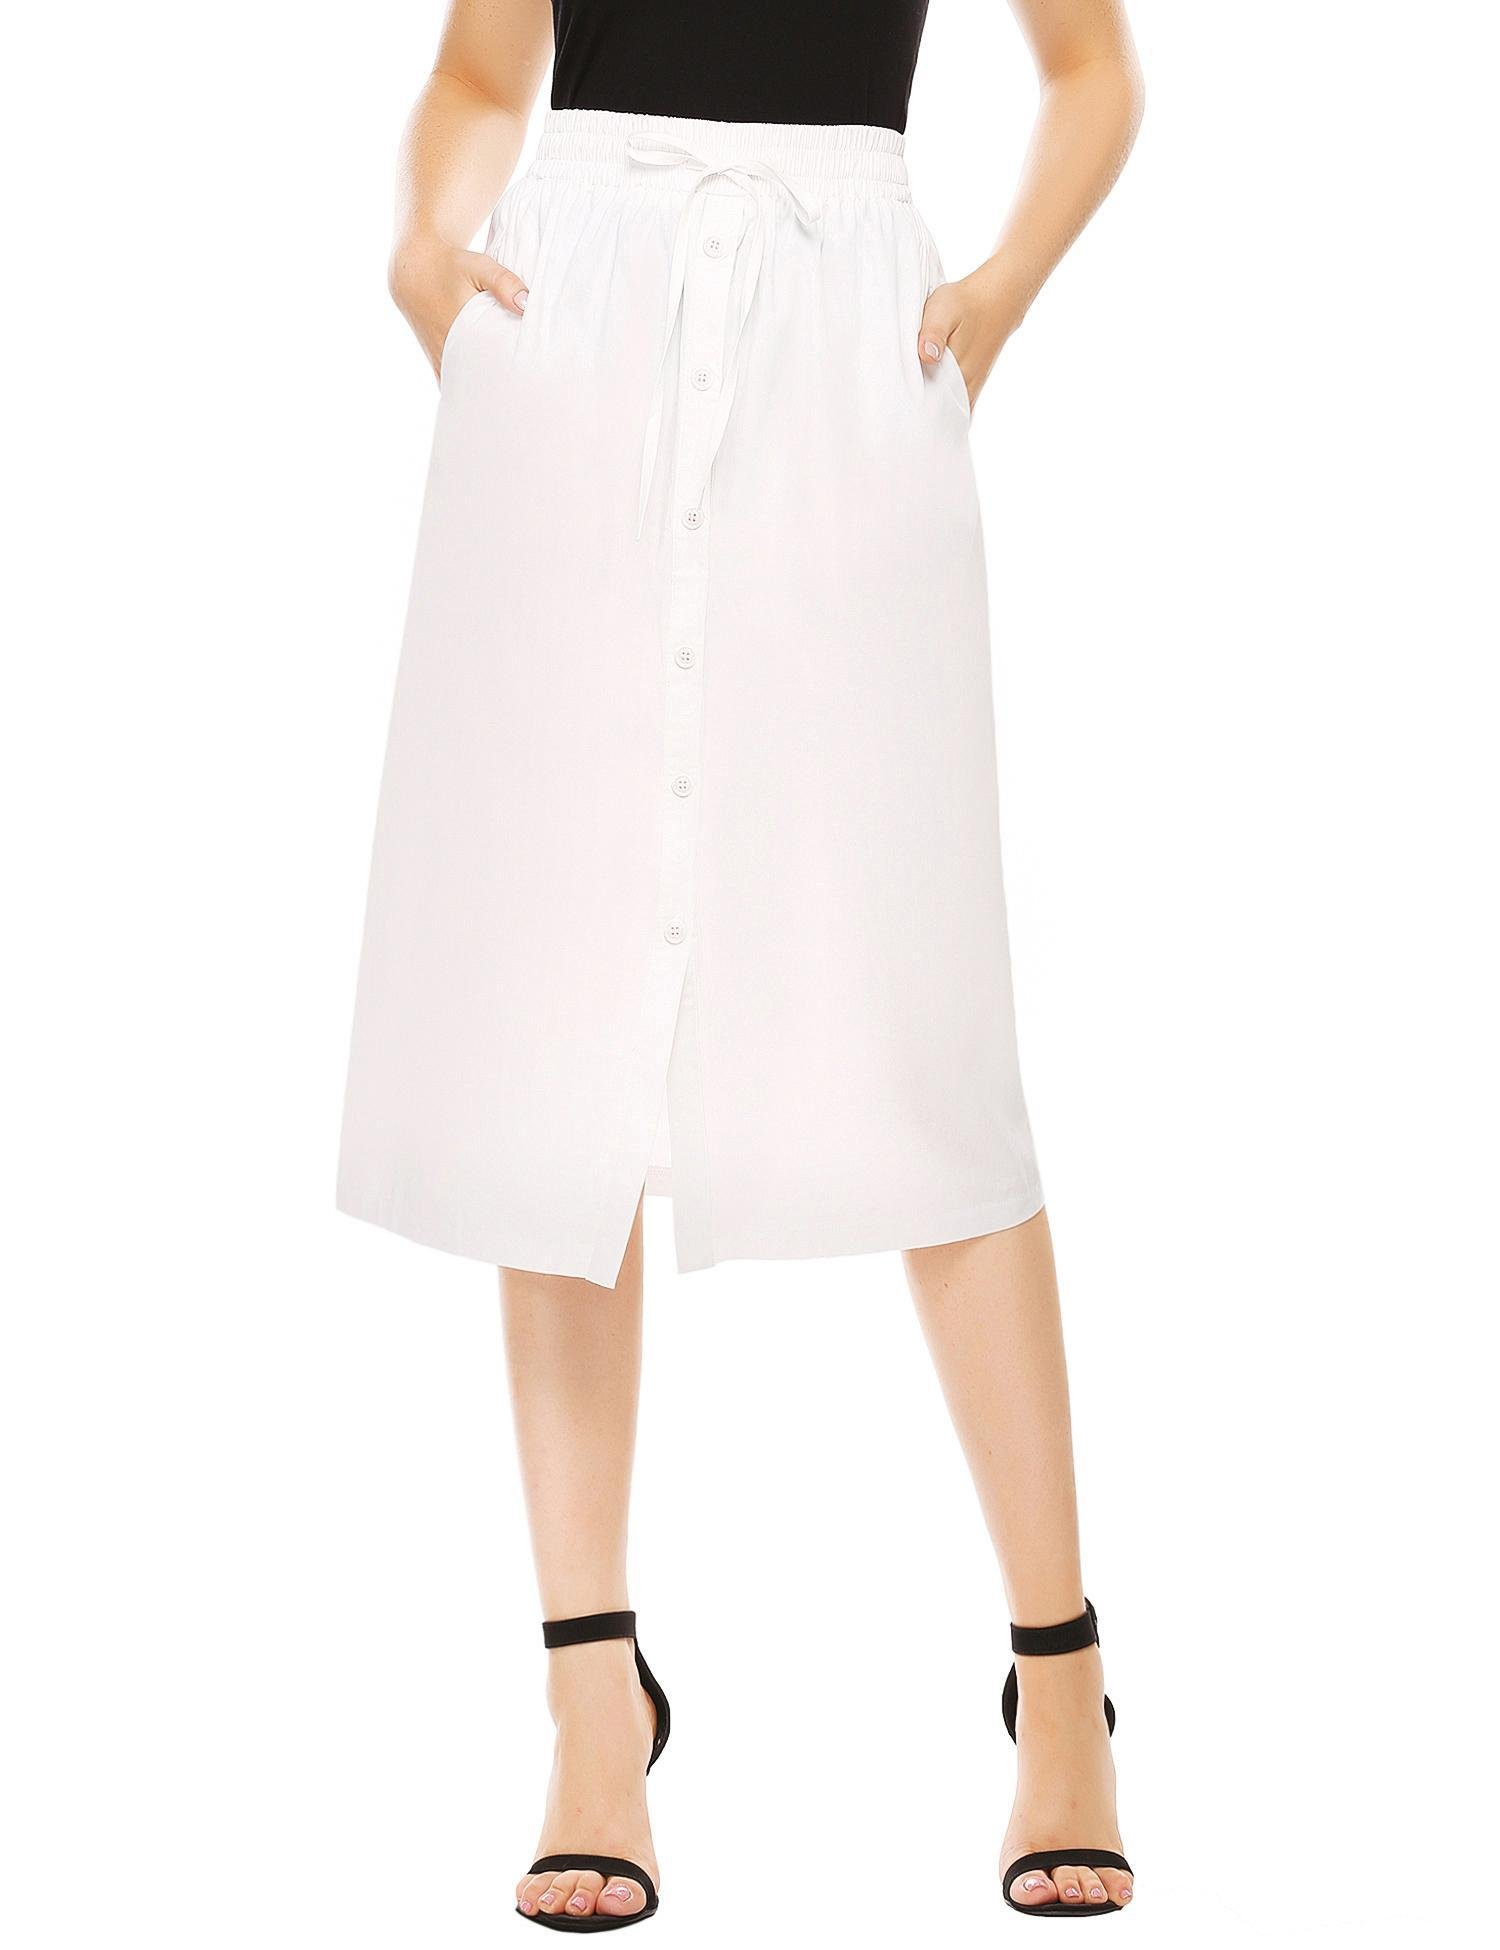 SHINE Women's A-Line High Waisted Button Front Drawstring Pleated Midi Skirt With Elastic Waist Knee Length, White, Medium